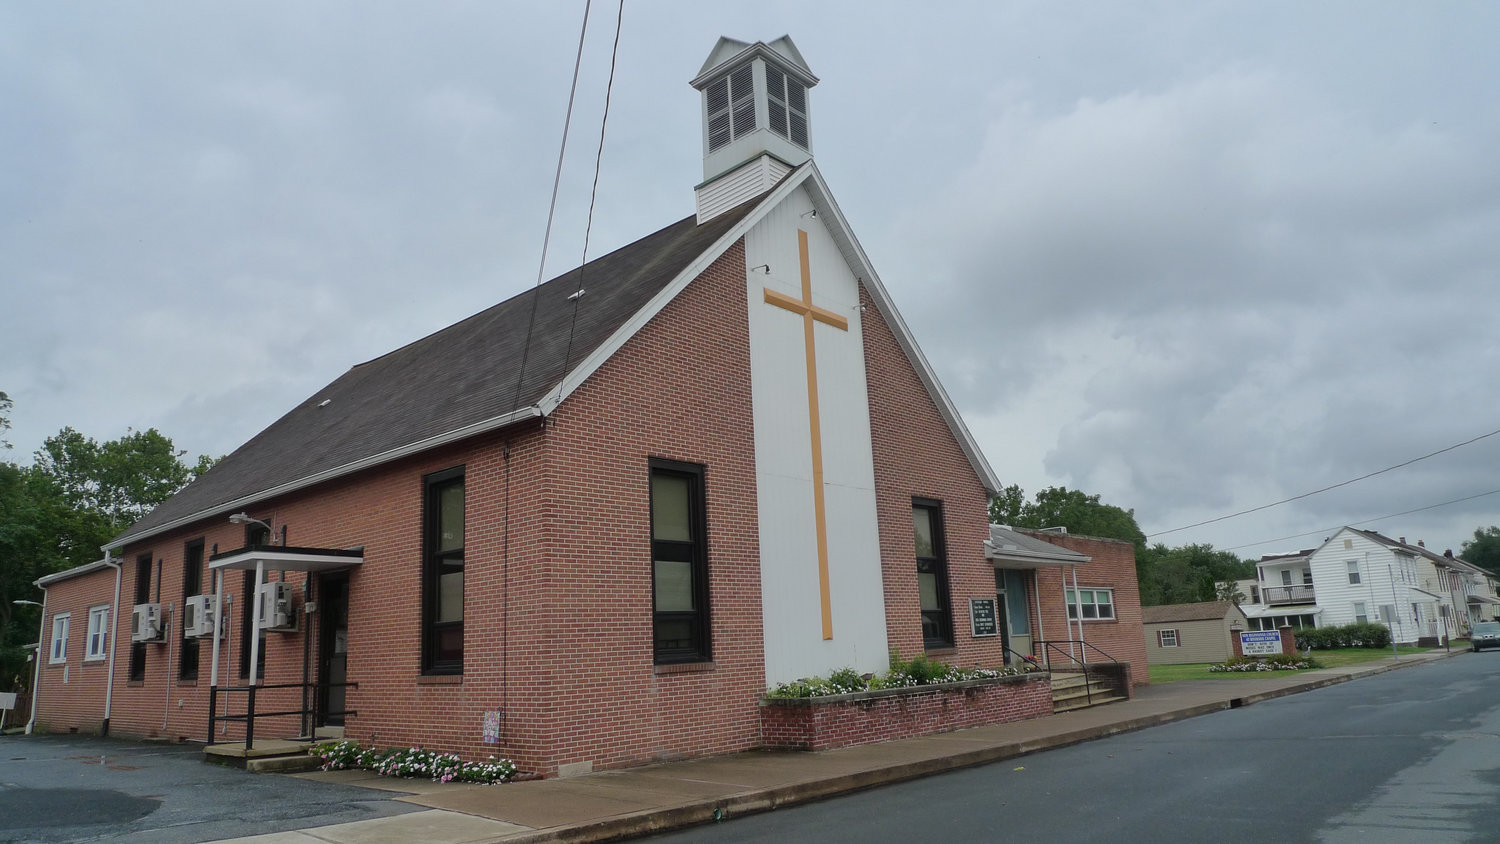 The cross was stolen from on the grounds behind the New Beginnings Church at 630 S. Union St. in Middletown.